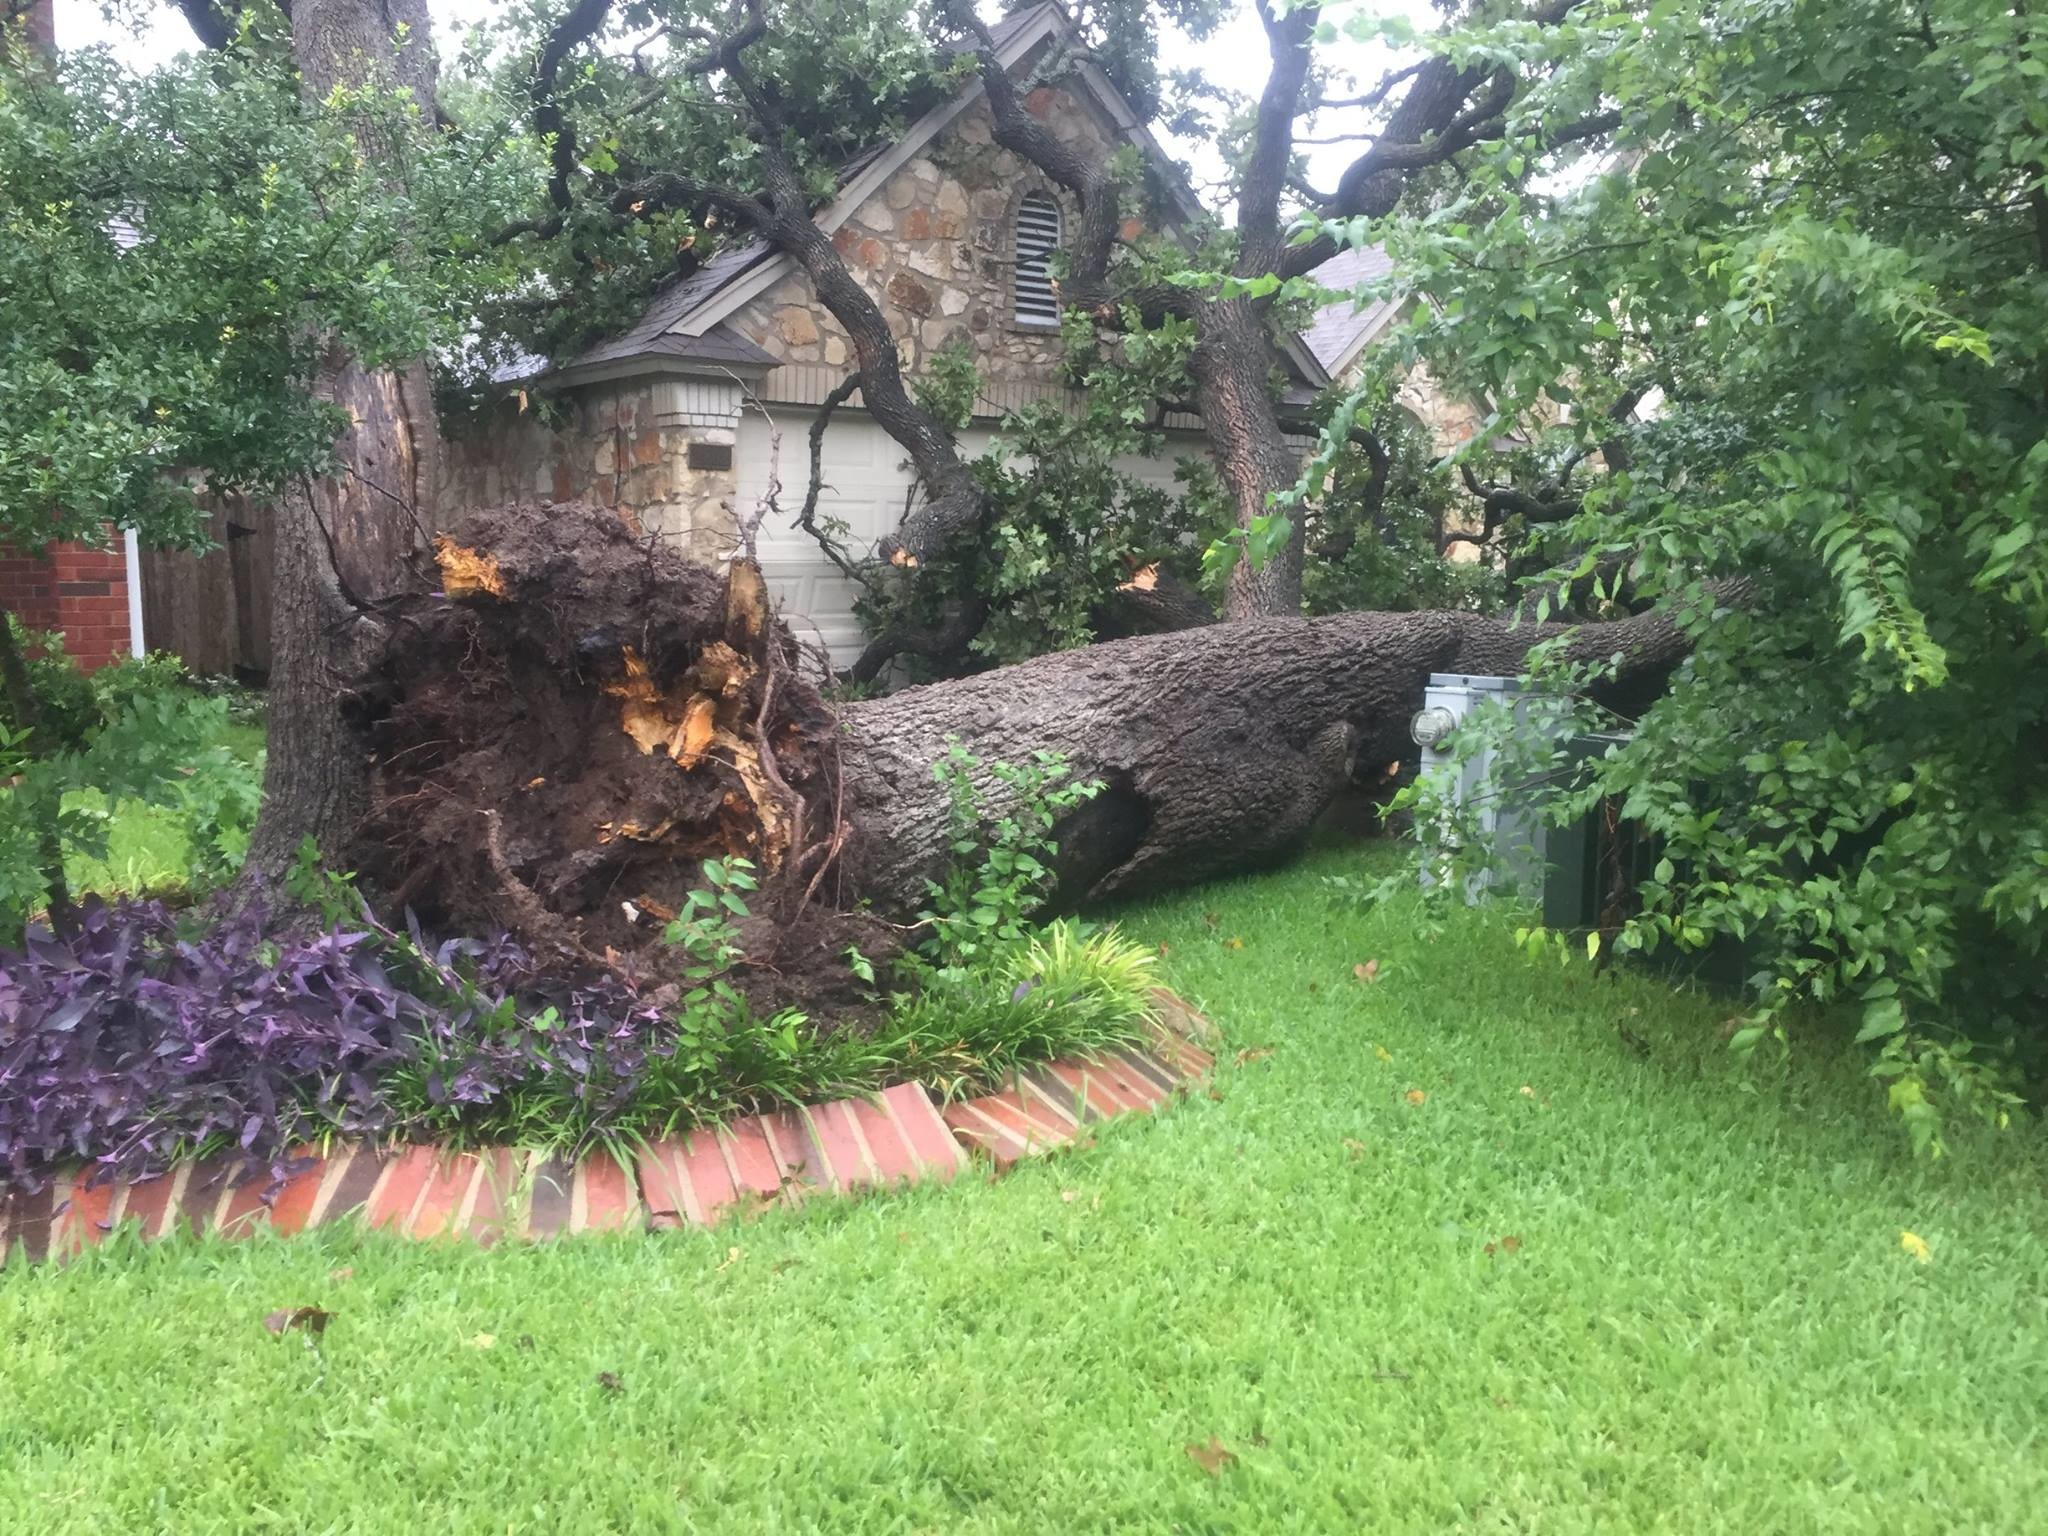 Storm damage in Cedar Park uprooted a tree from saturated root tree systems.